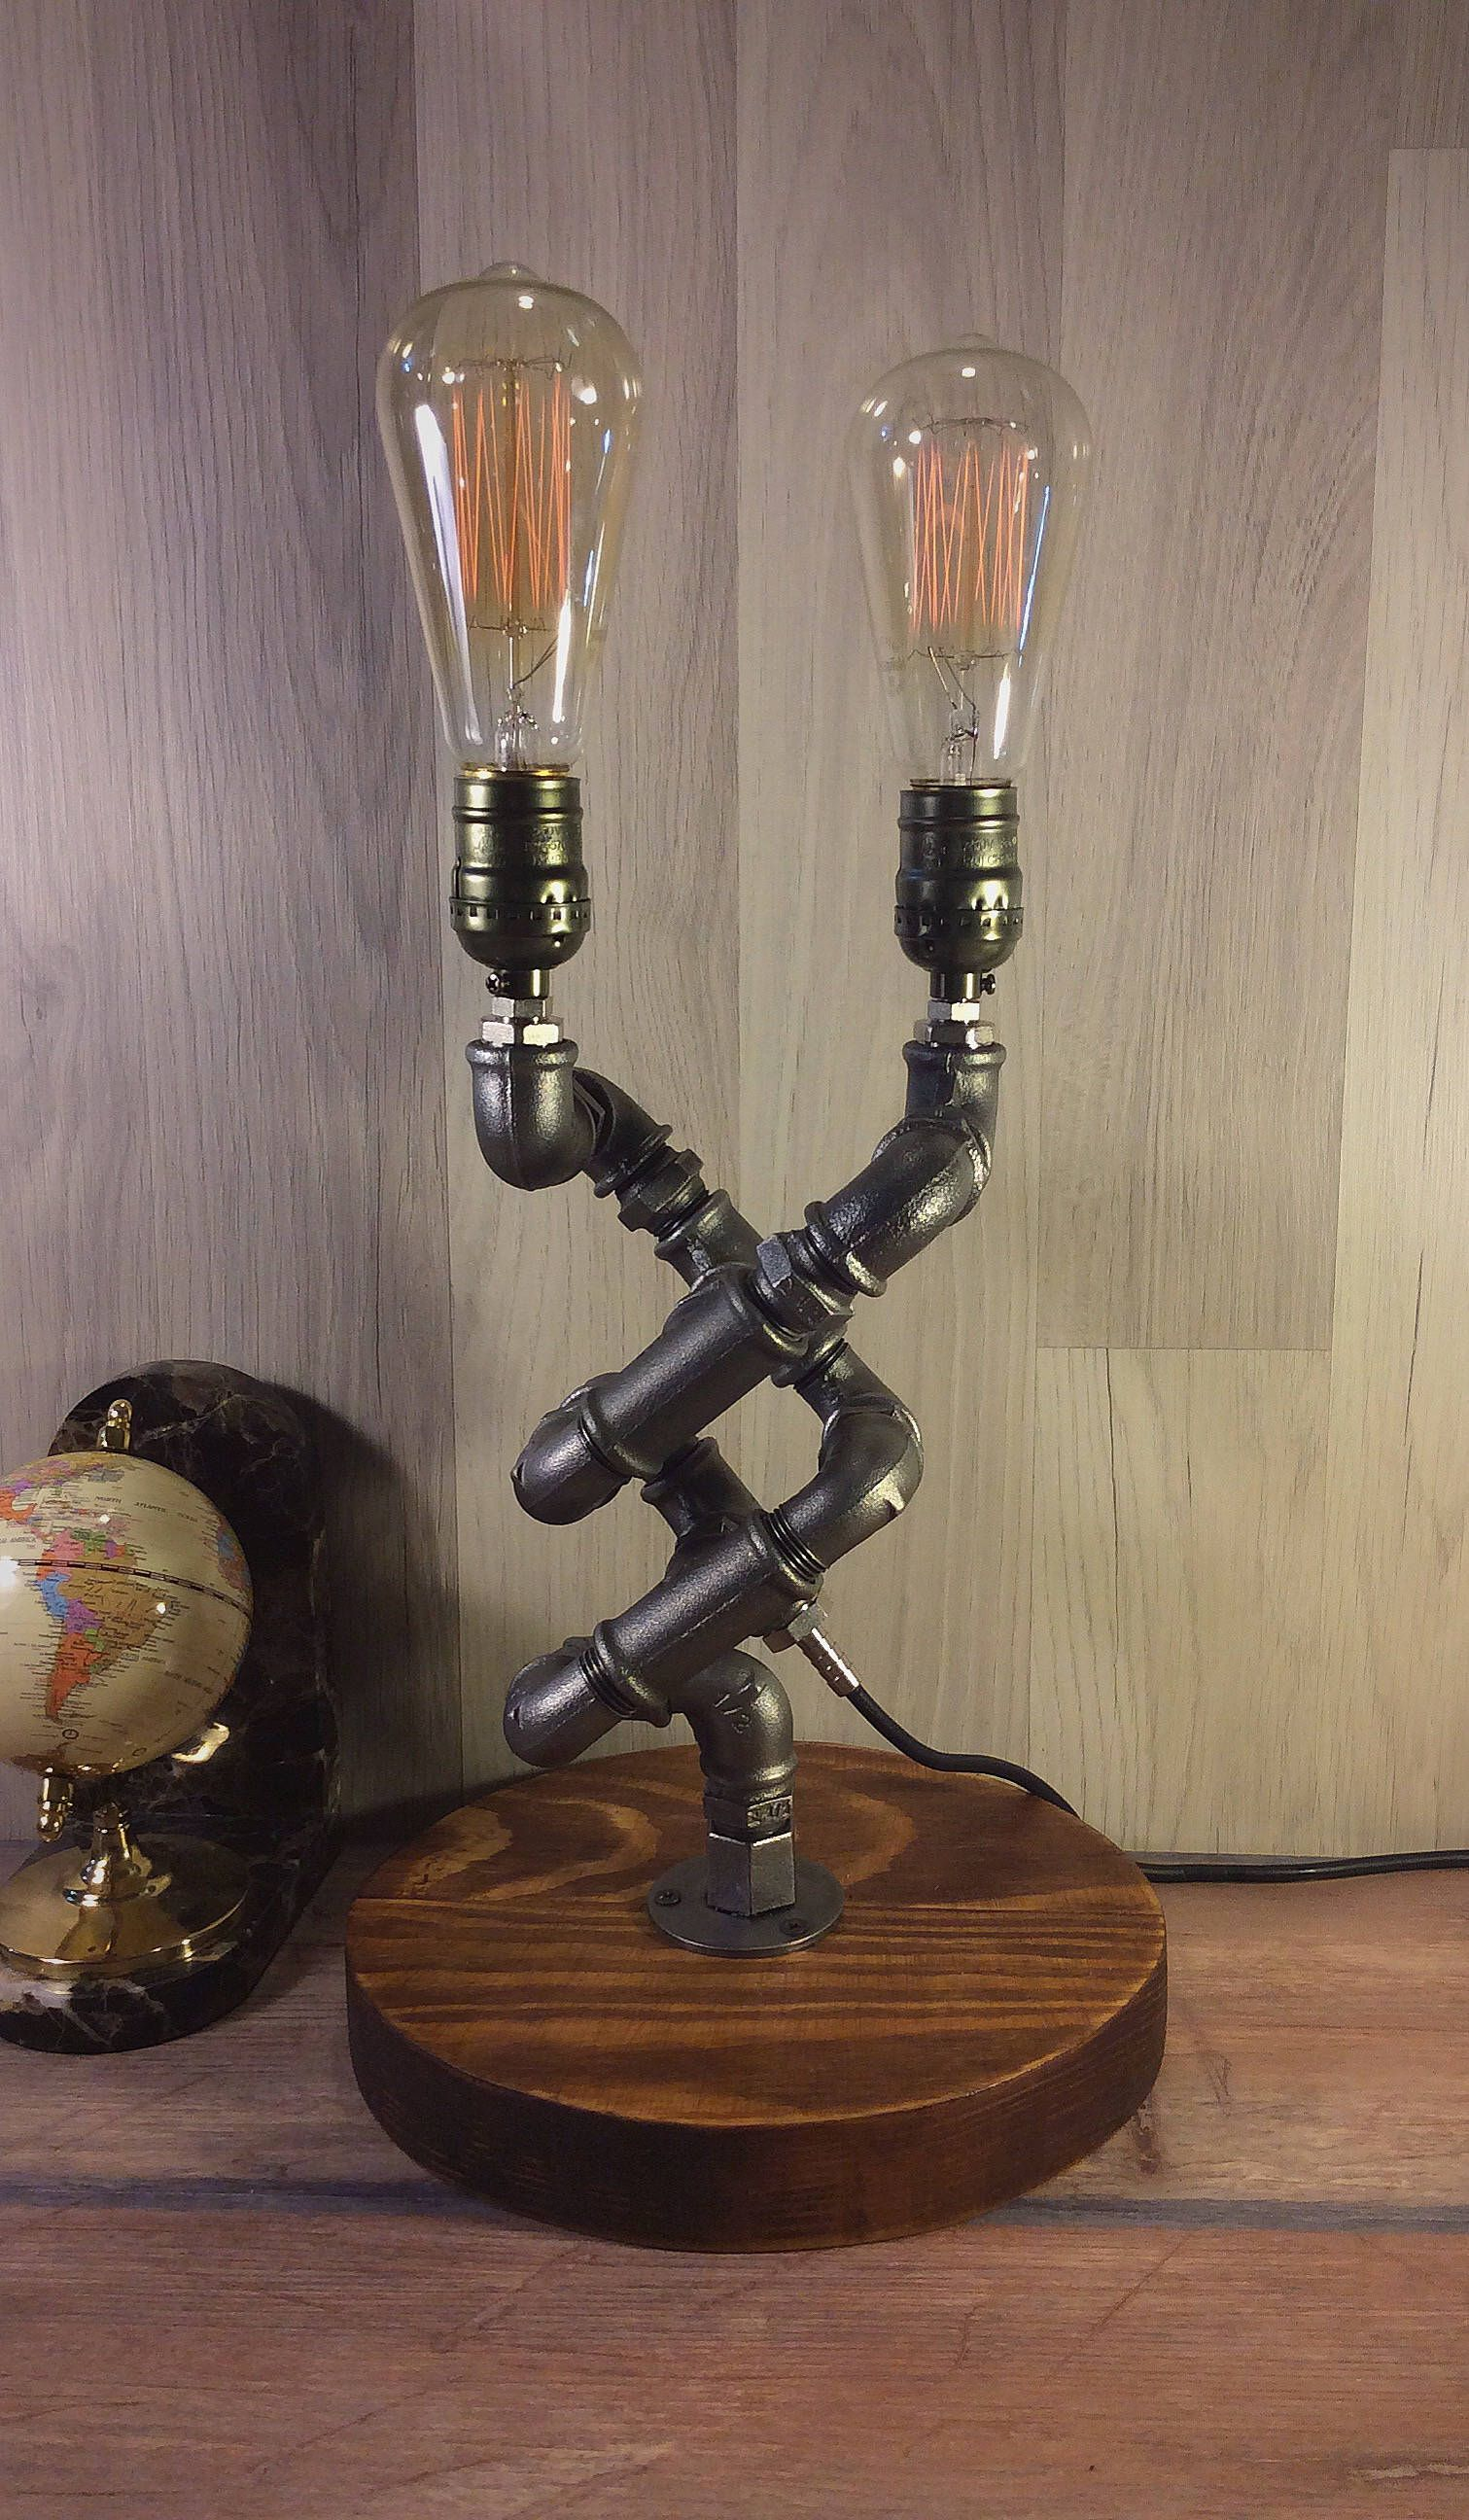 Rustic Decor Unique Table Lamp Lighting Steampunk Light Housewarming Gift